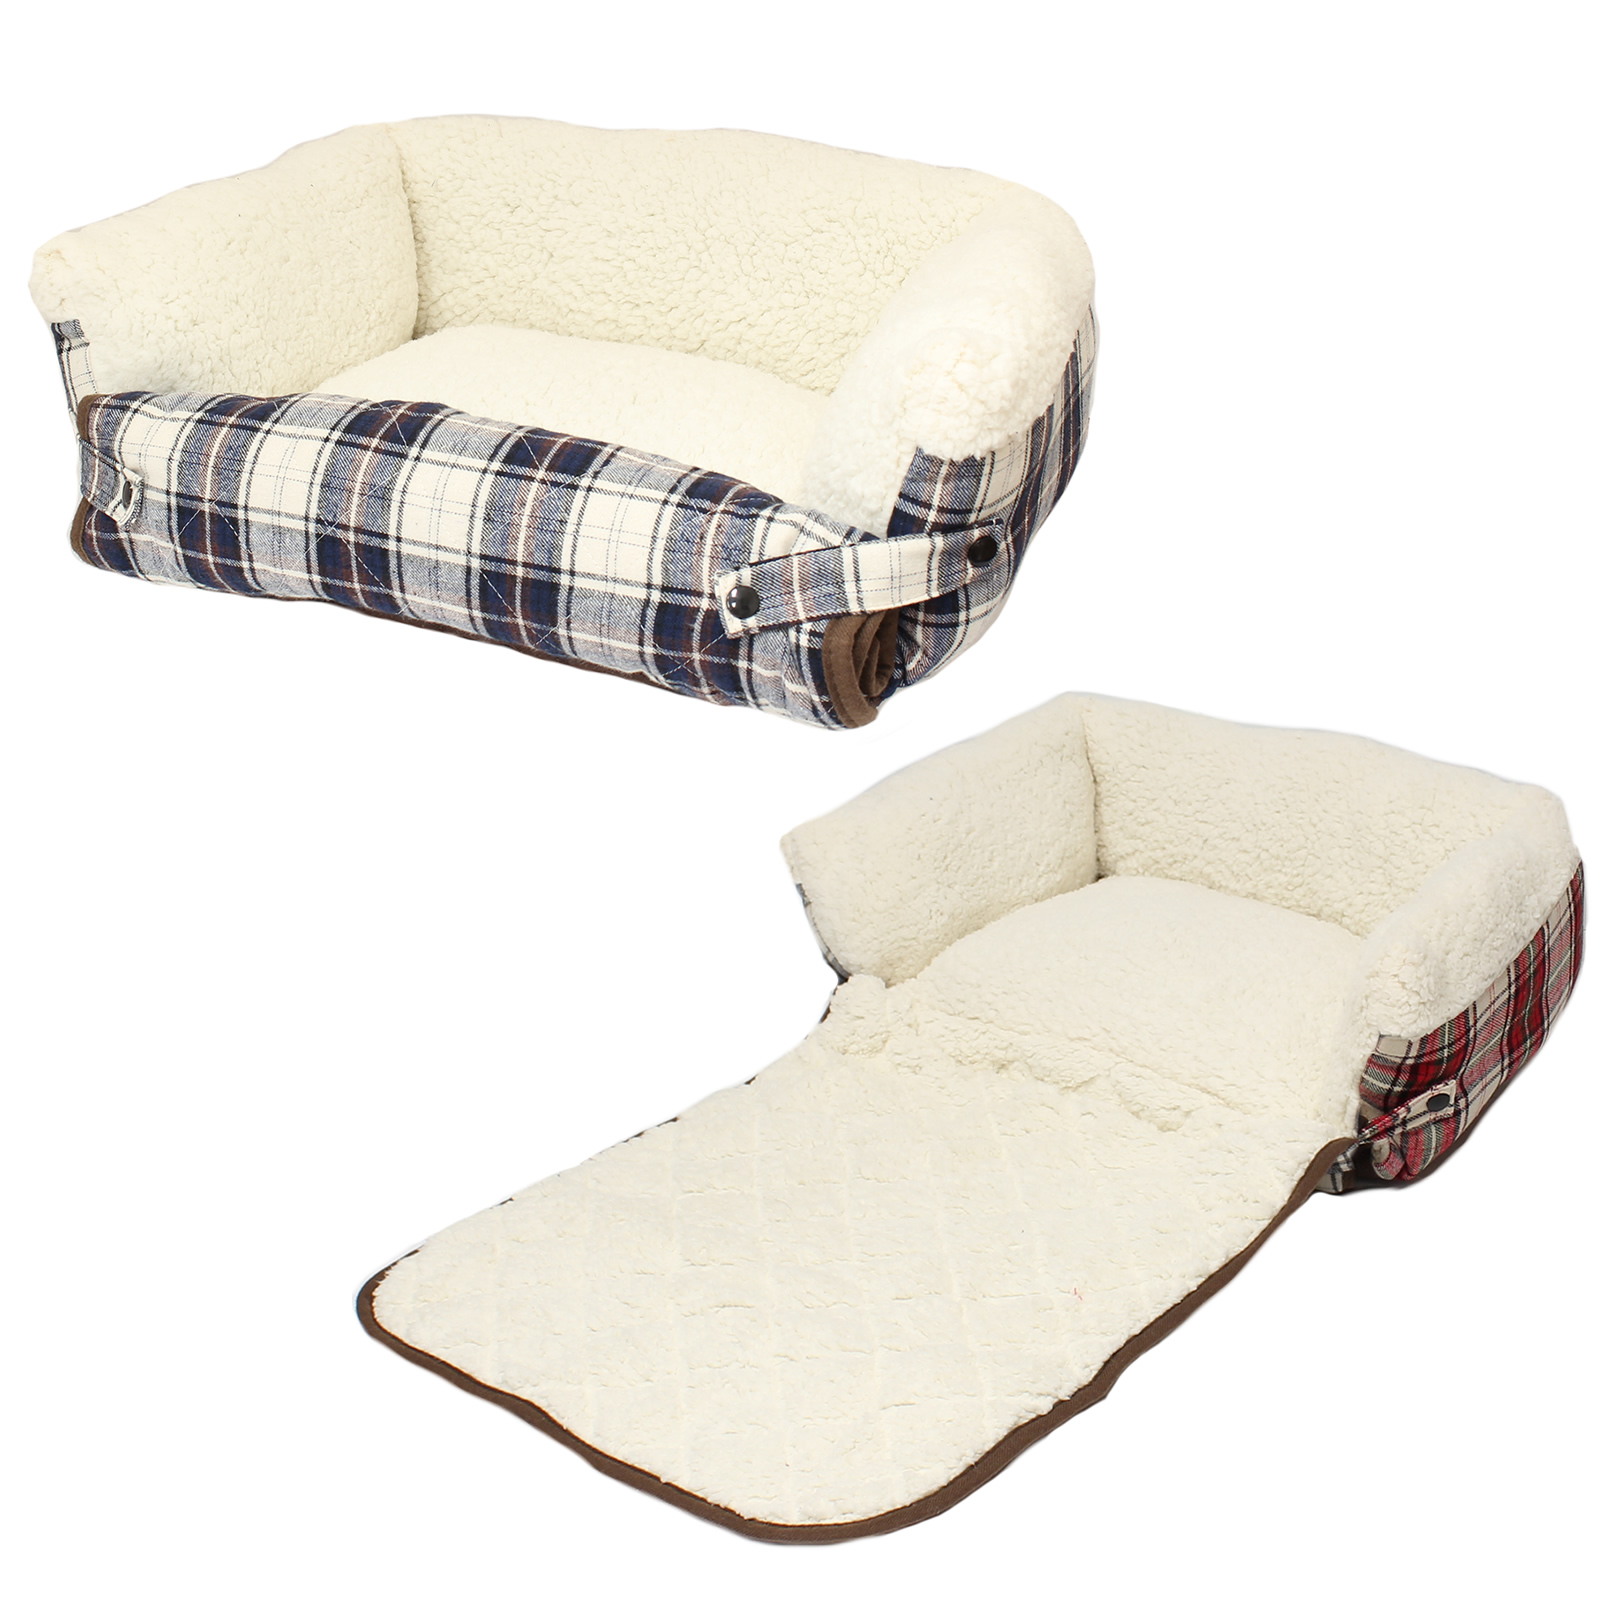 Small Couch That You Lay Down On